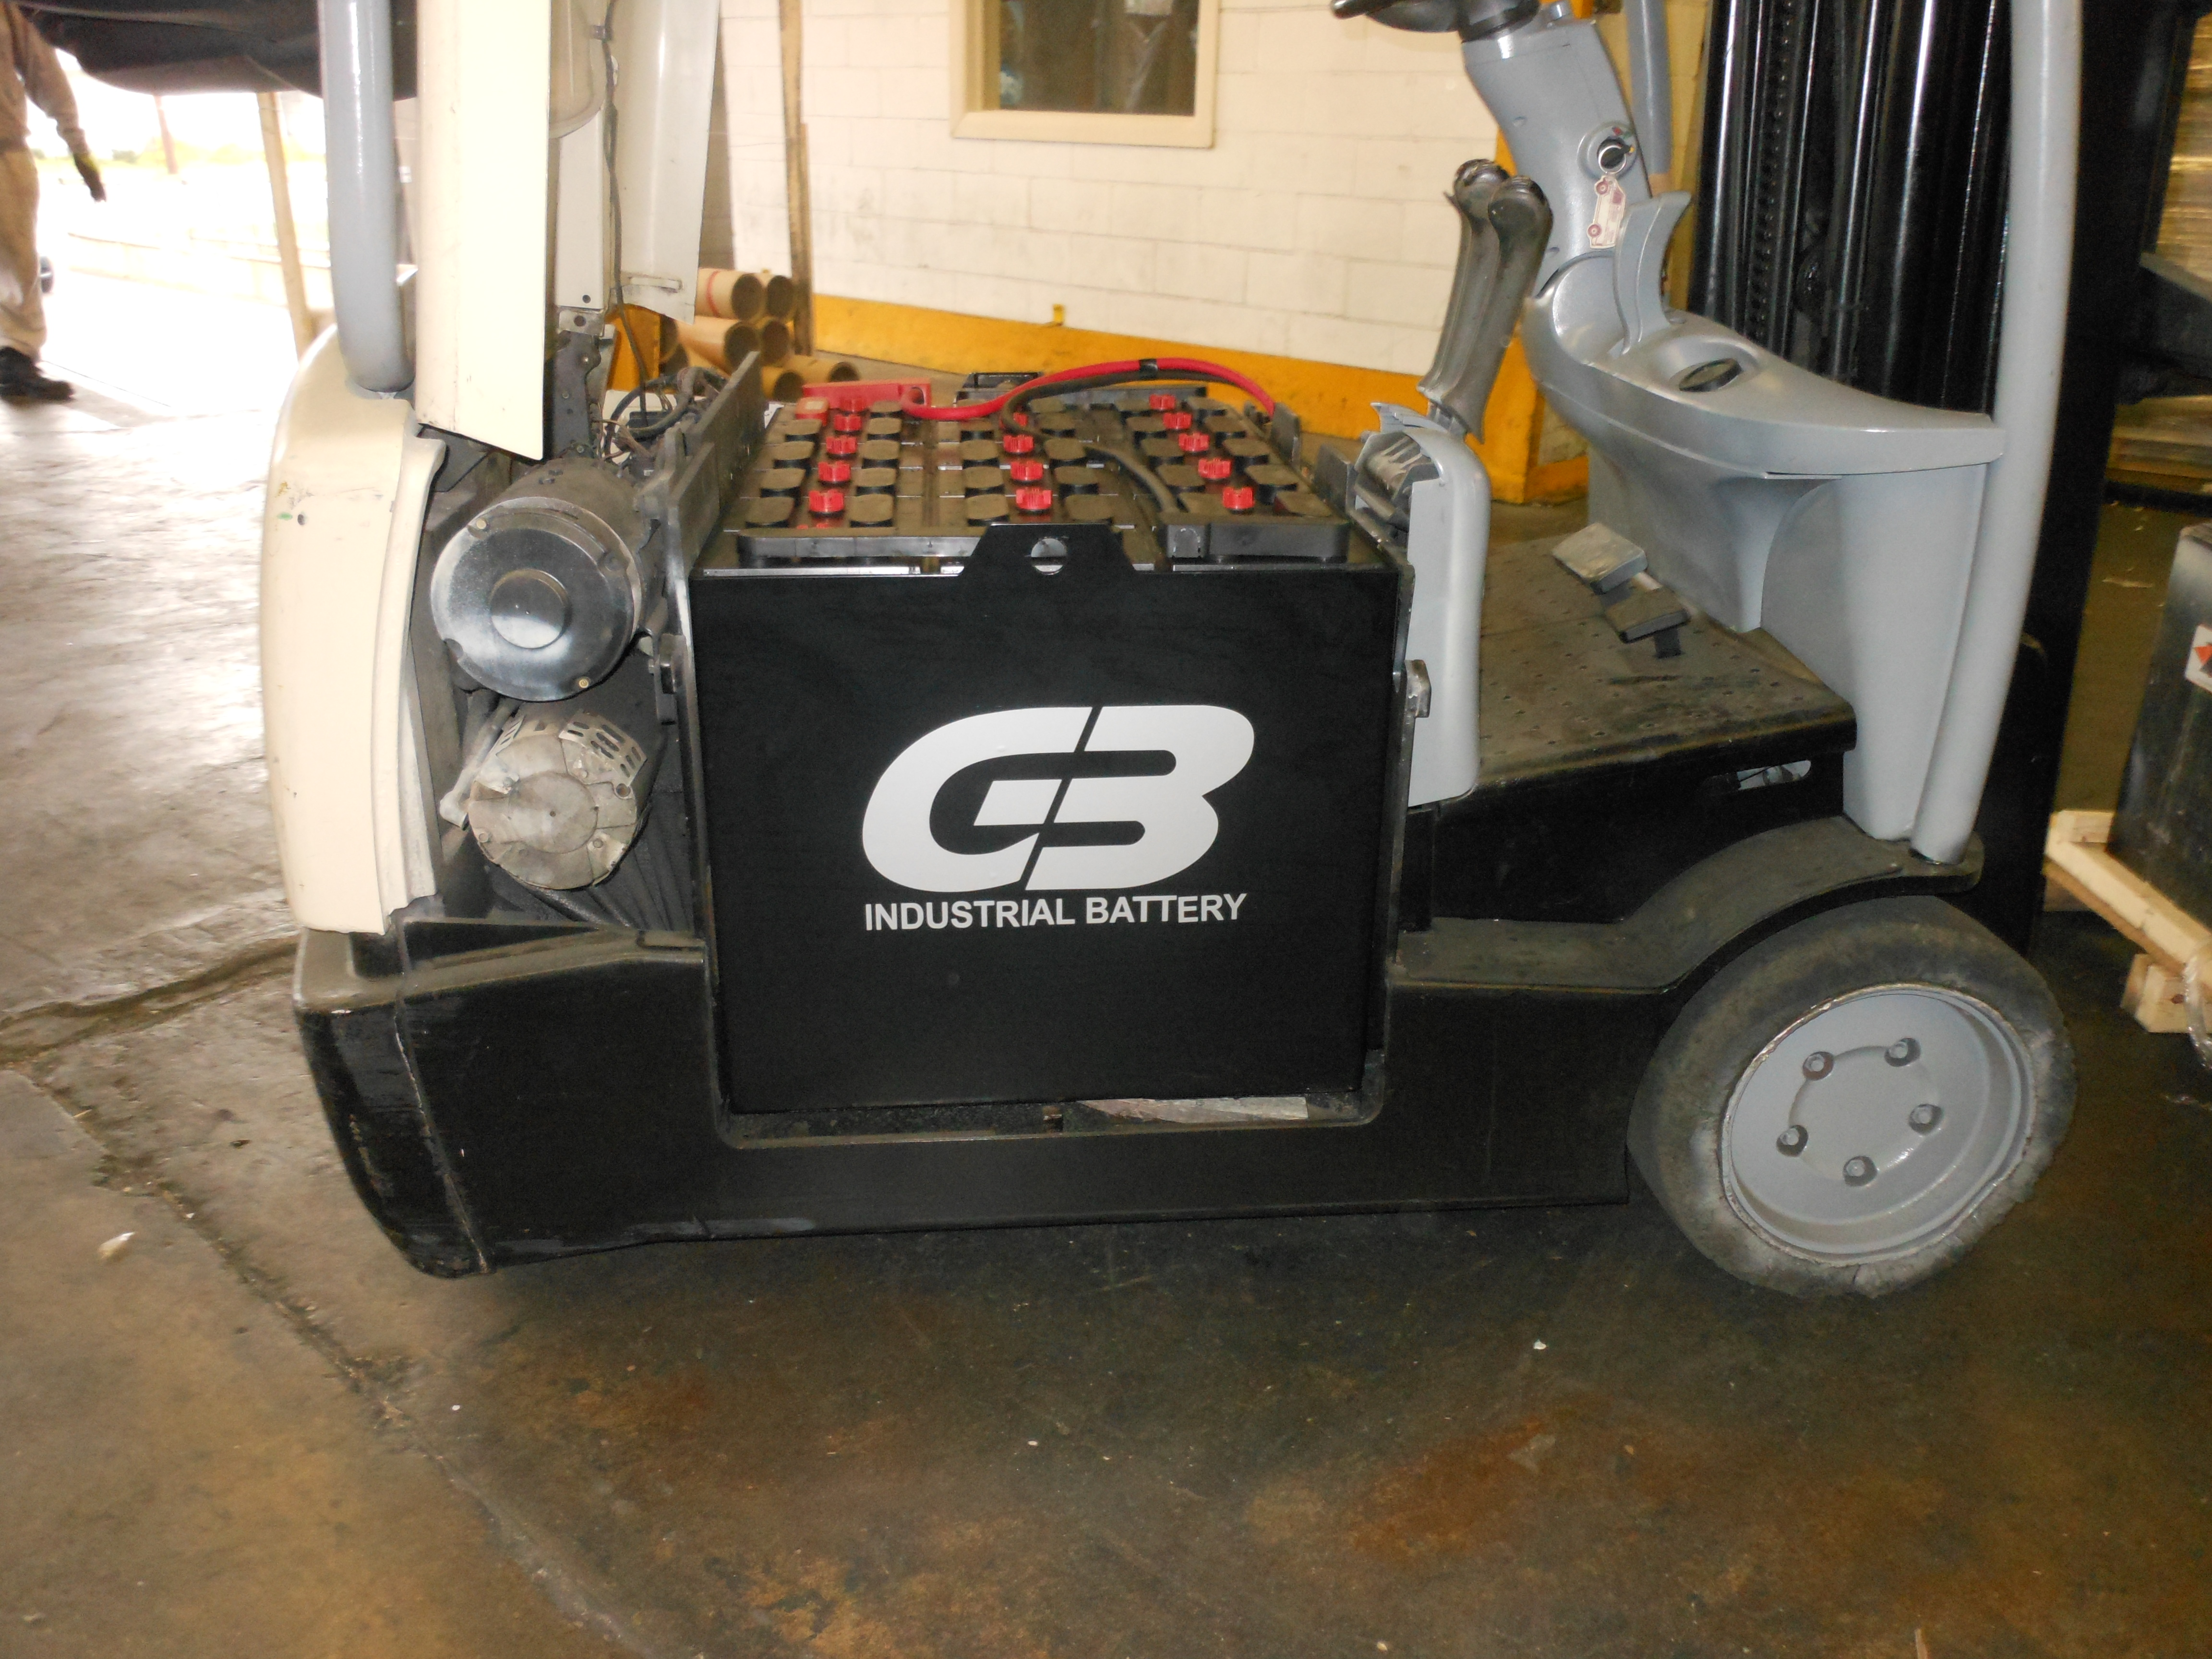 forklift battery price list new reconditioned lift truck gbindustrialbattery com drexel%20slt 22%20swingmast%20forklift%20battery%2018 100 17 jpg